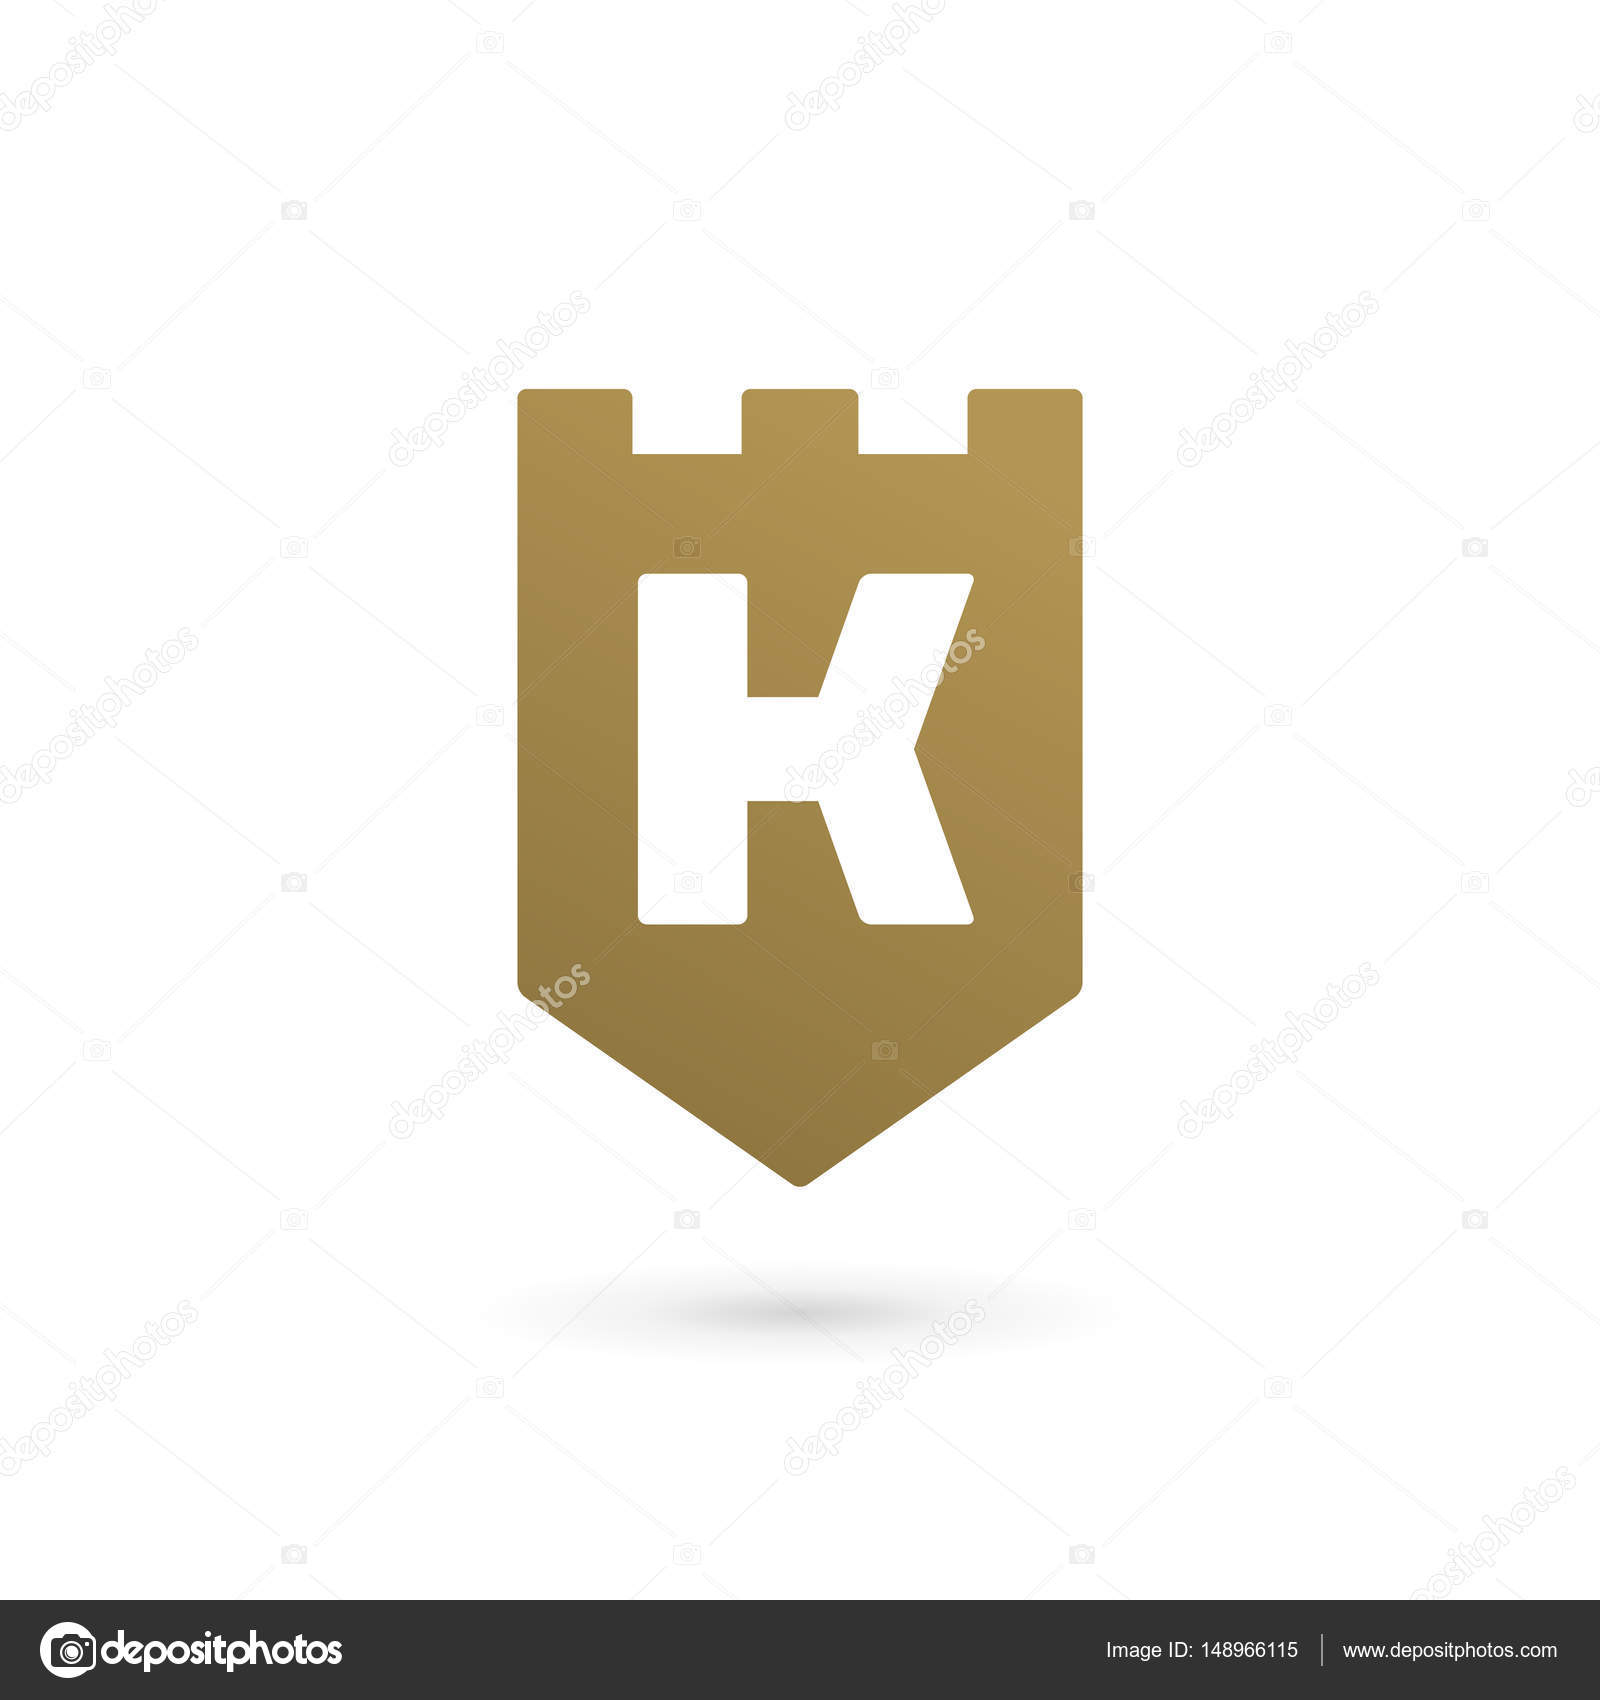 Letter K shield logo icon design template elements — Stock Vector ...